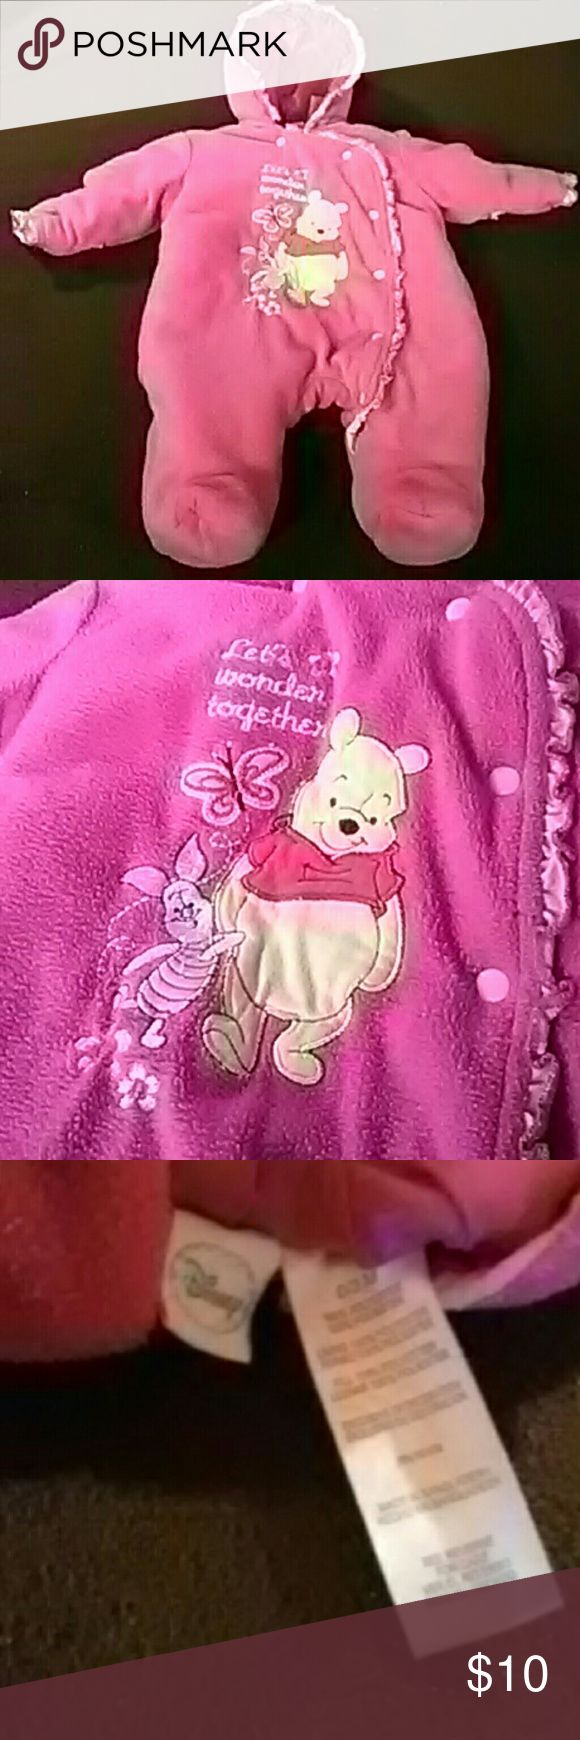 Winnie the Pooh bodysuit This is super cute and warm. The hands fold into finger covers and it has feet to keep toesies warm. Worn and well loved, but in great condition. Disney One Pieces Bodysuits